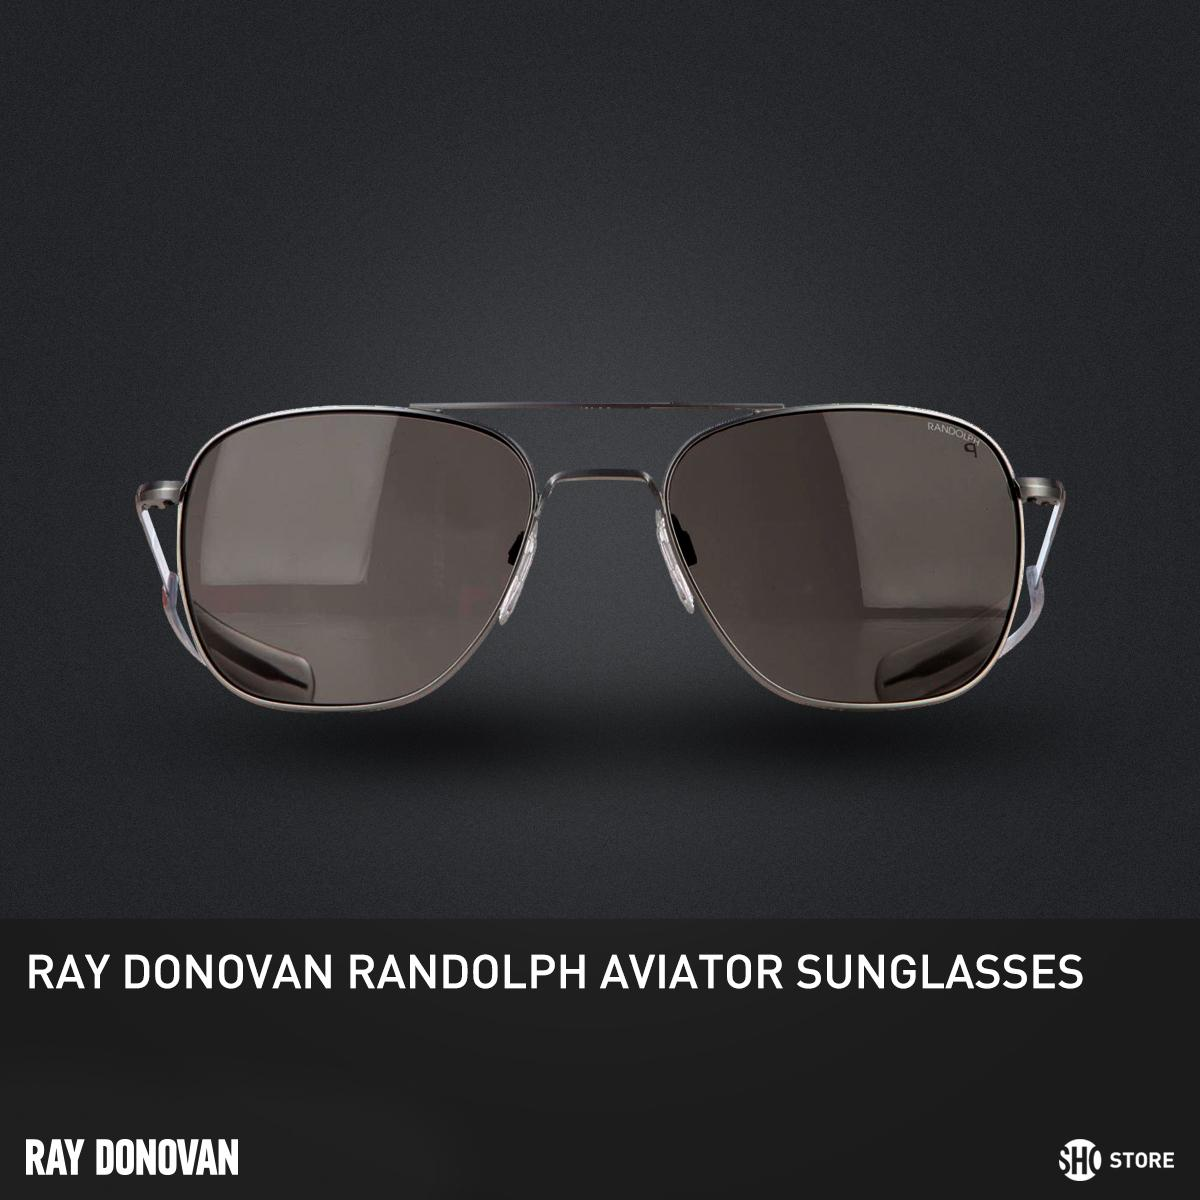 d0edab39427e9 Ray Donovan on Showtime on Twitter